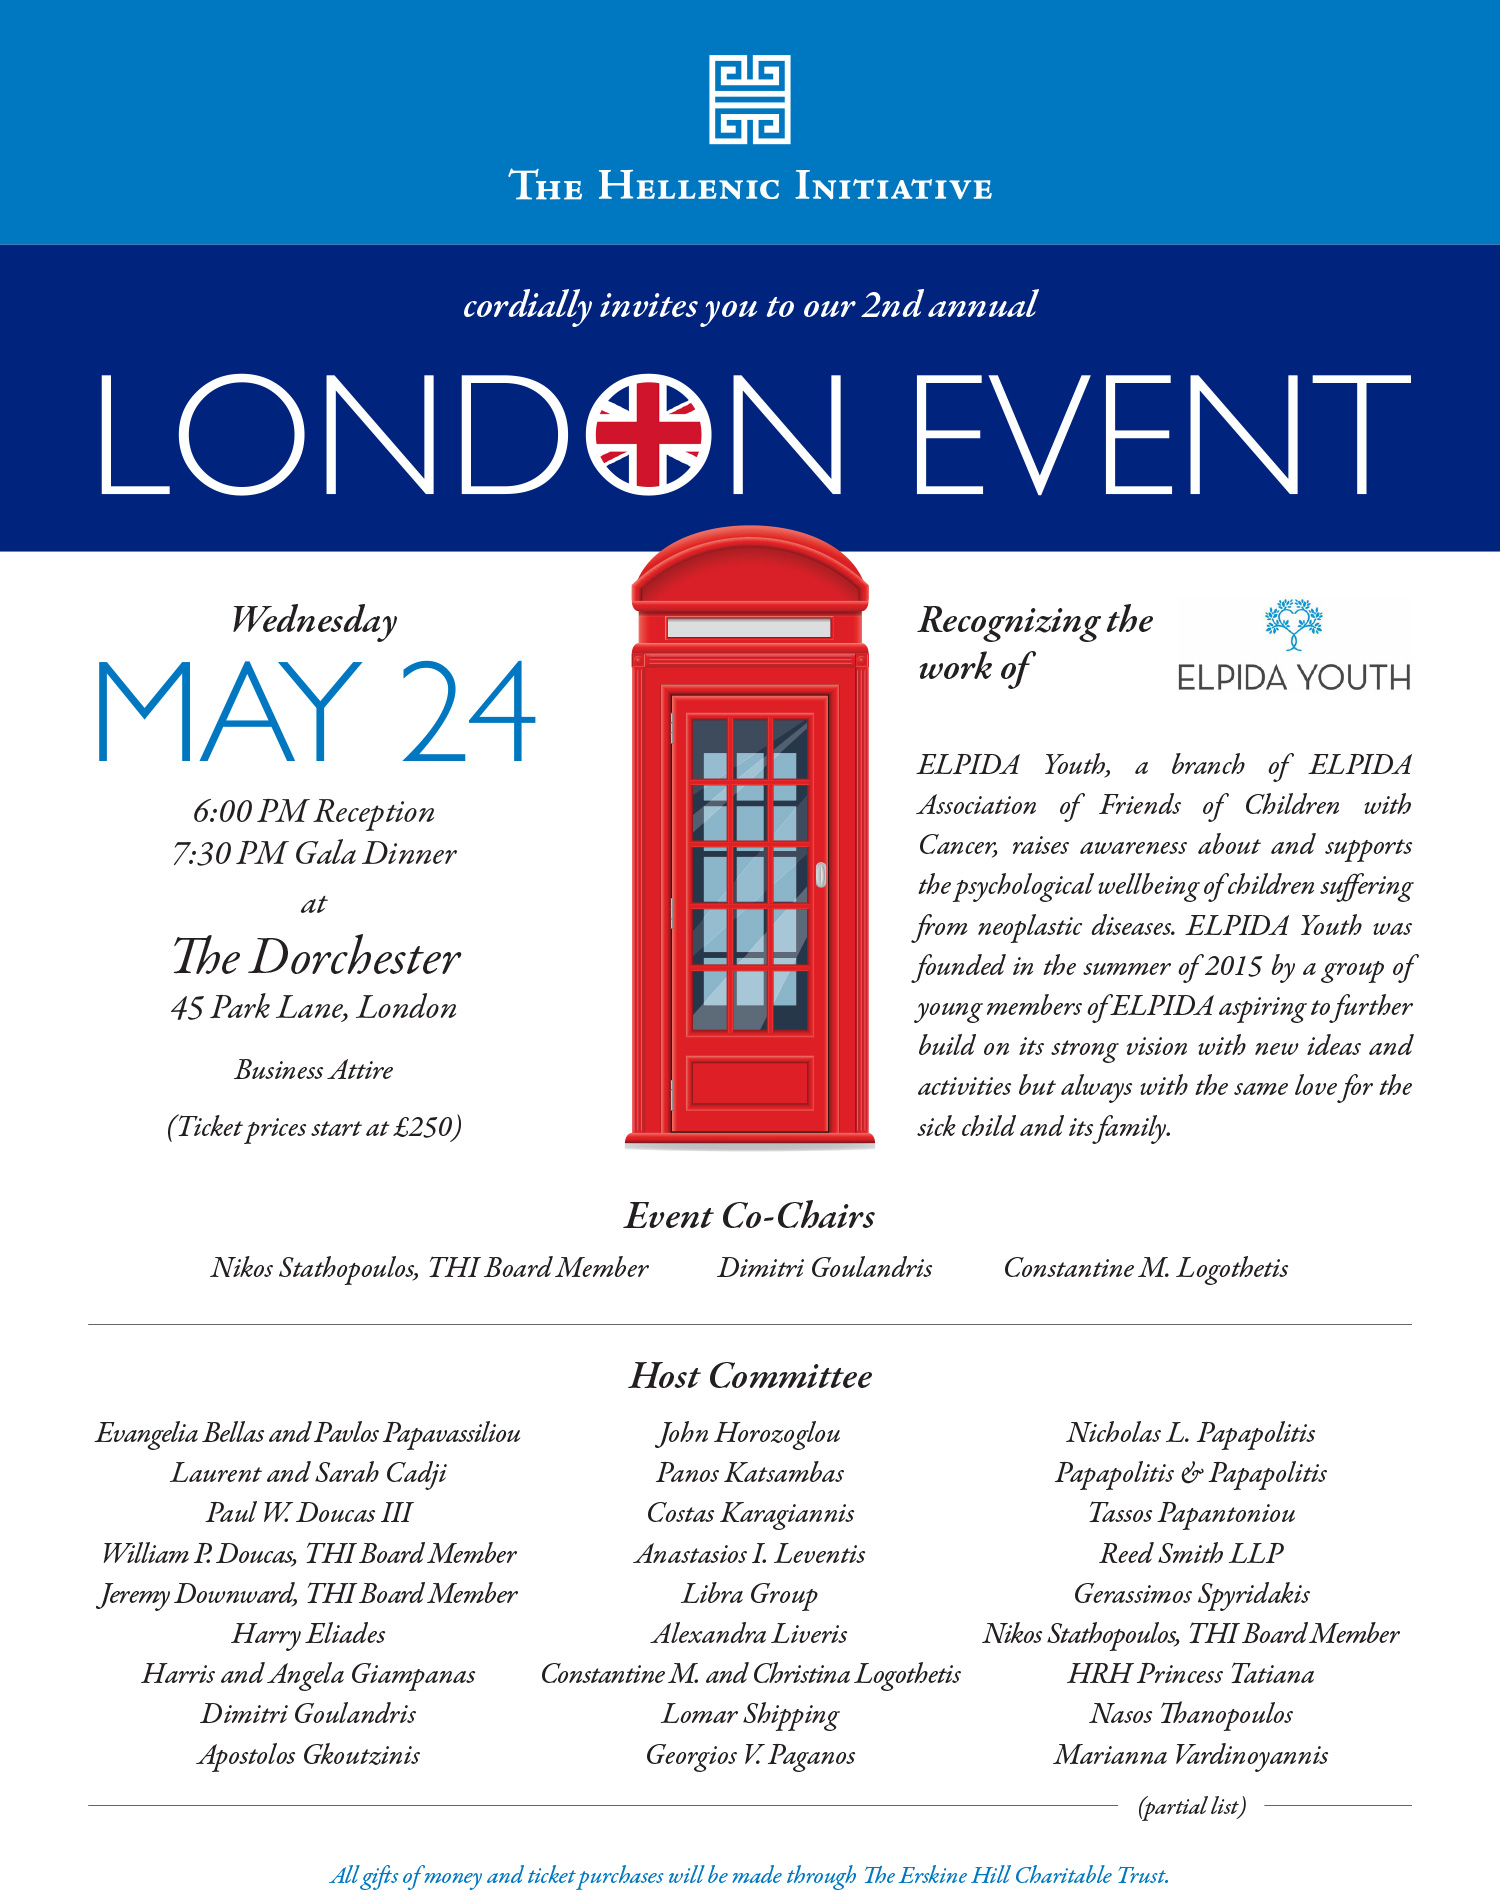 THI 2nd Annual London Event. Recognizing the work of ELPIDA Youth.